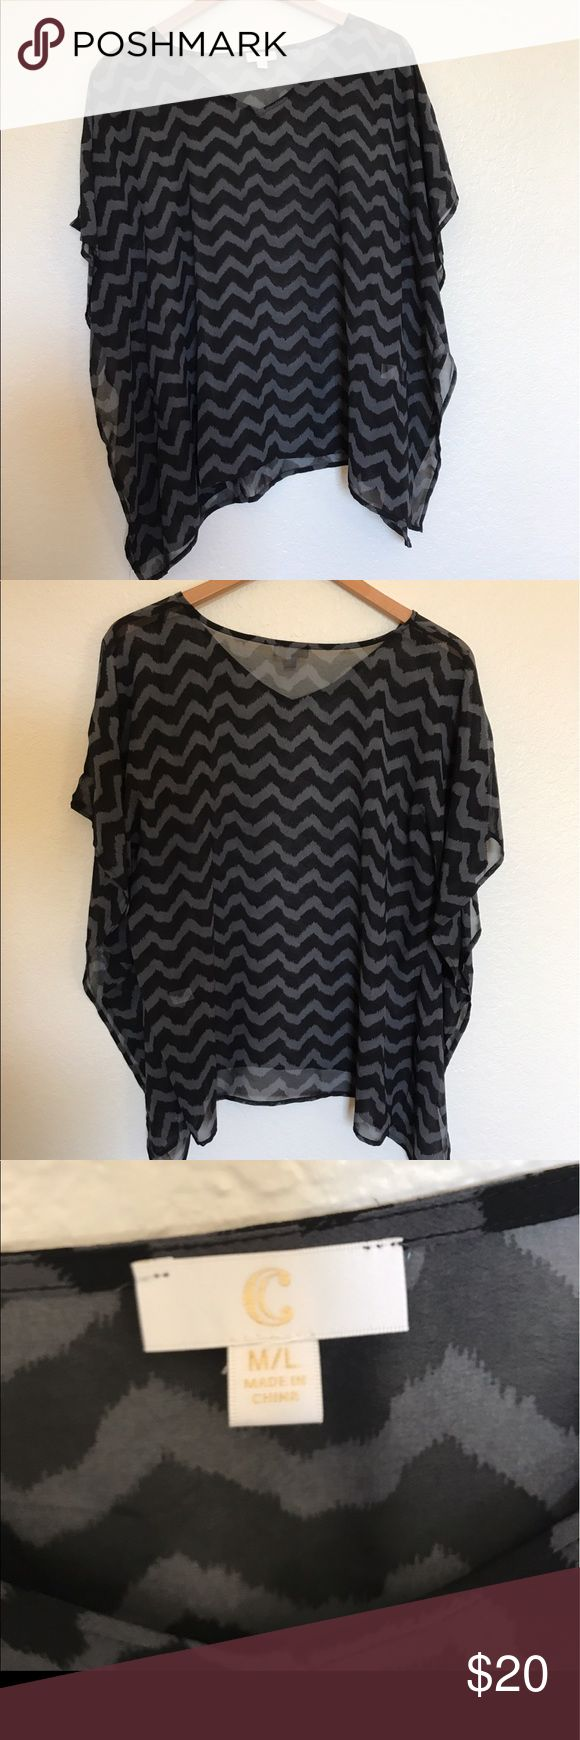 NWOT Charming Charlie's Batwing Coverup Top NWOT Charming Charlie's batwing chevron swim caftan. Black and grey chevron pattern. Batwing sleeves. 100% polyester. Never been worn (given to me as a gift). Charming Charlie Tops Blouses